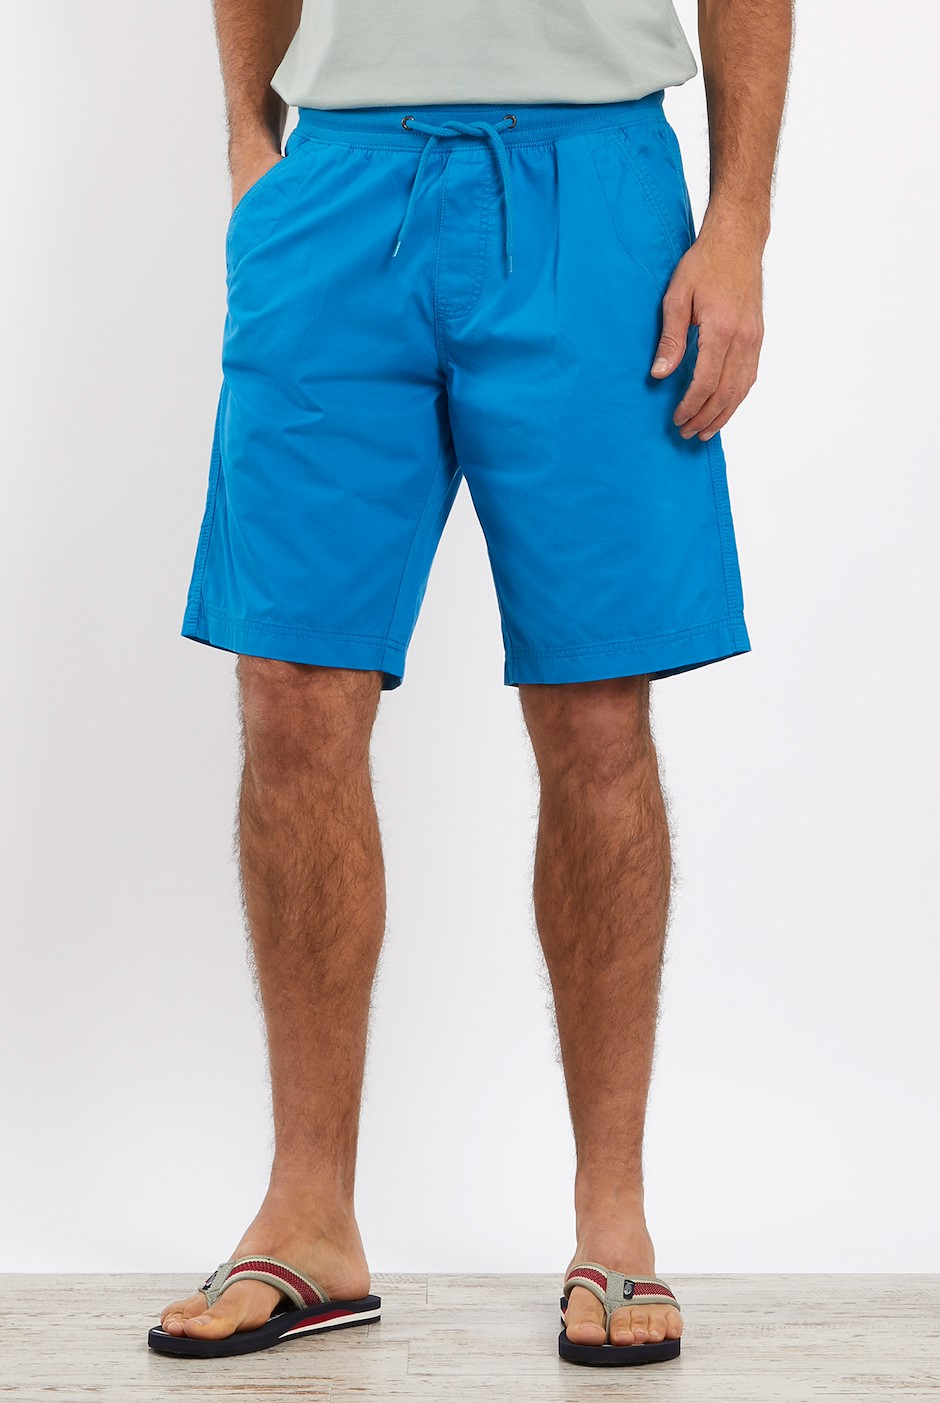 Murrisk Relaxed Casual Shorts Blue Wash